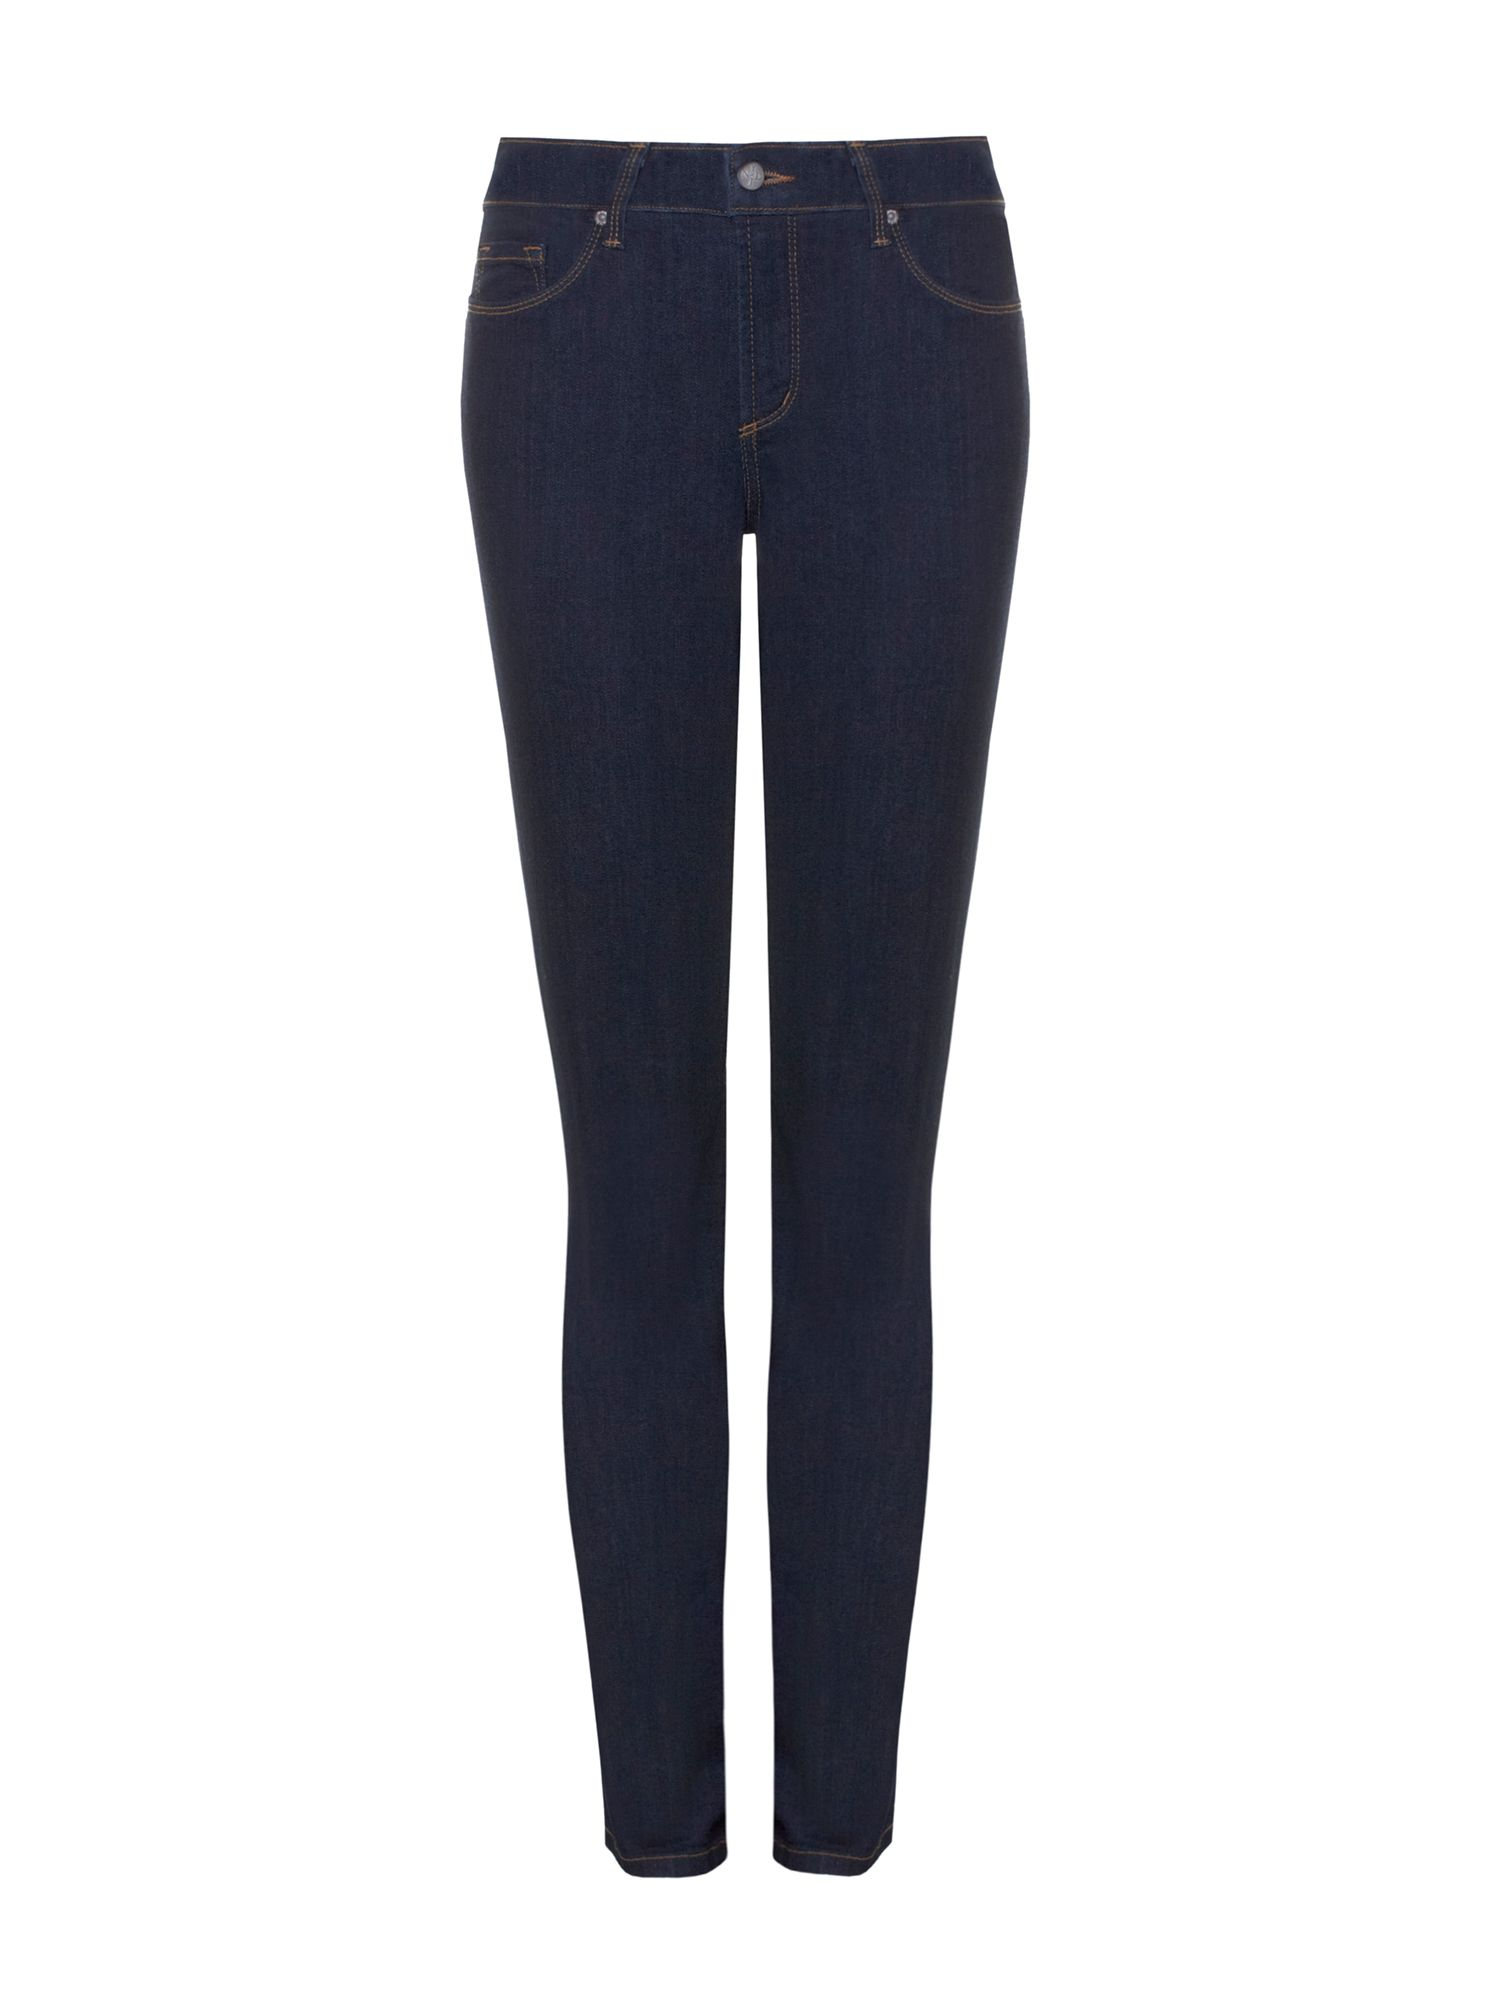 NYDJ Skinny In Blue Premium Denim Petite Denim